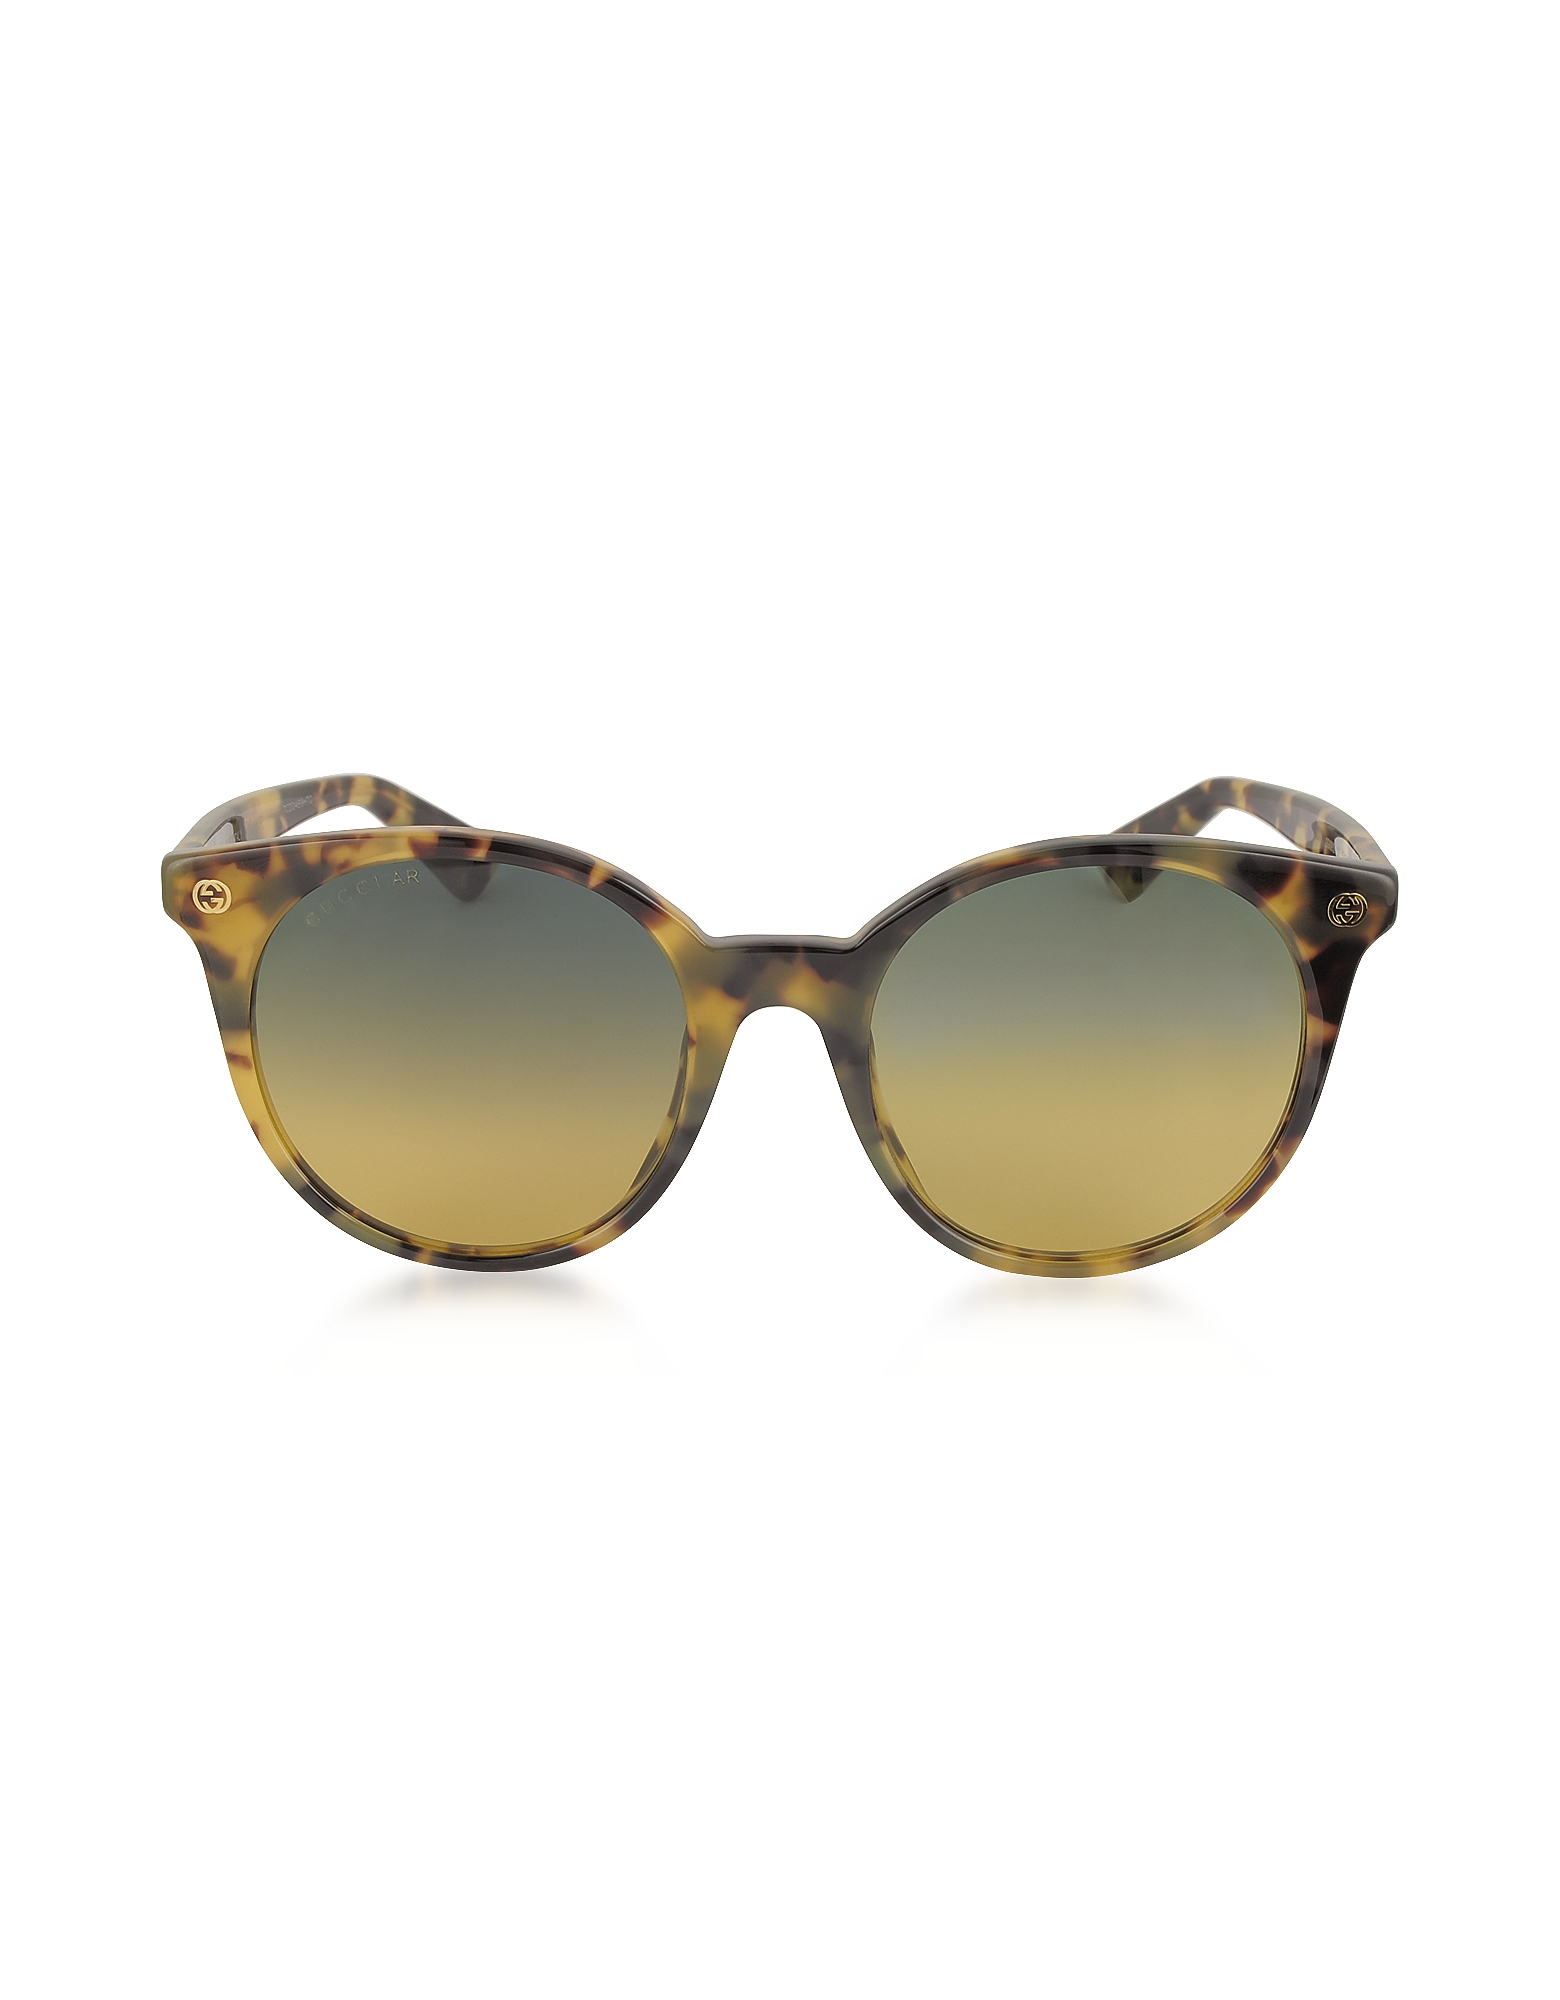 Gucci Sunglasses, GG0091S Acetate Round Women's Sunglasses